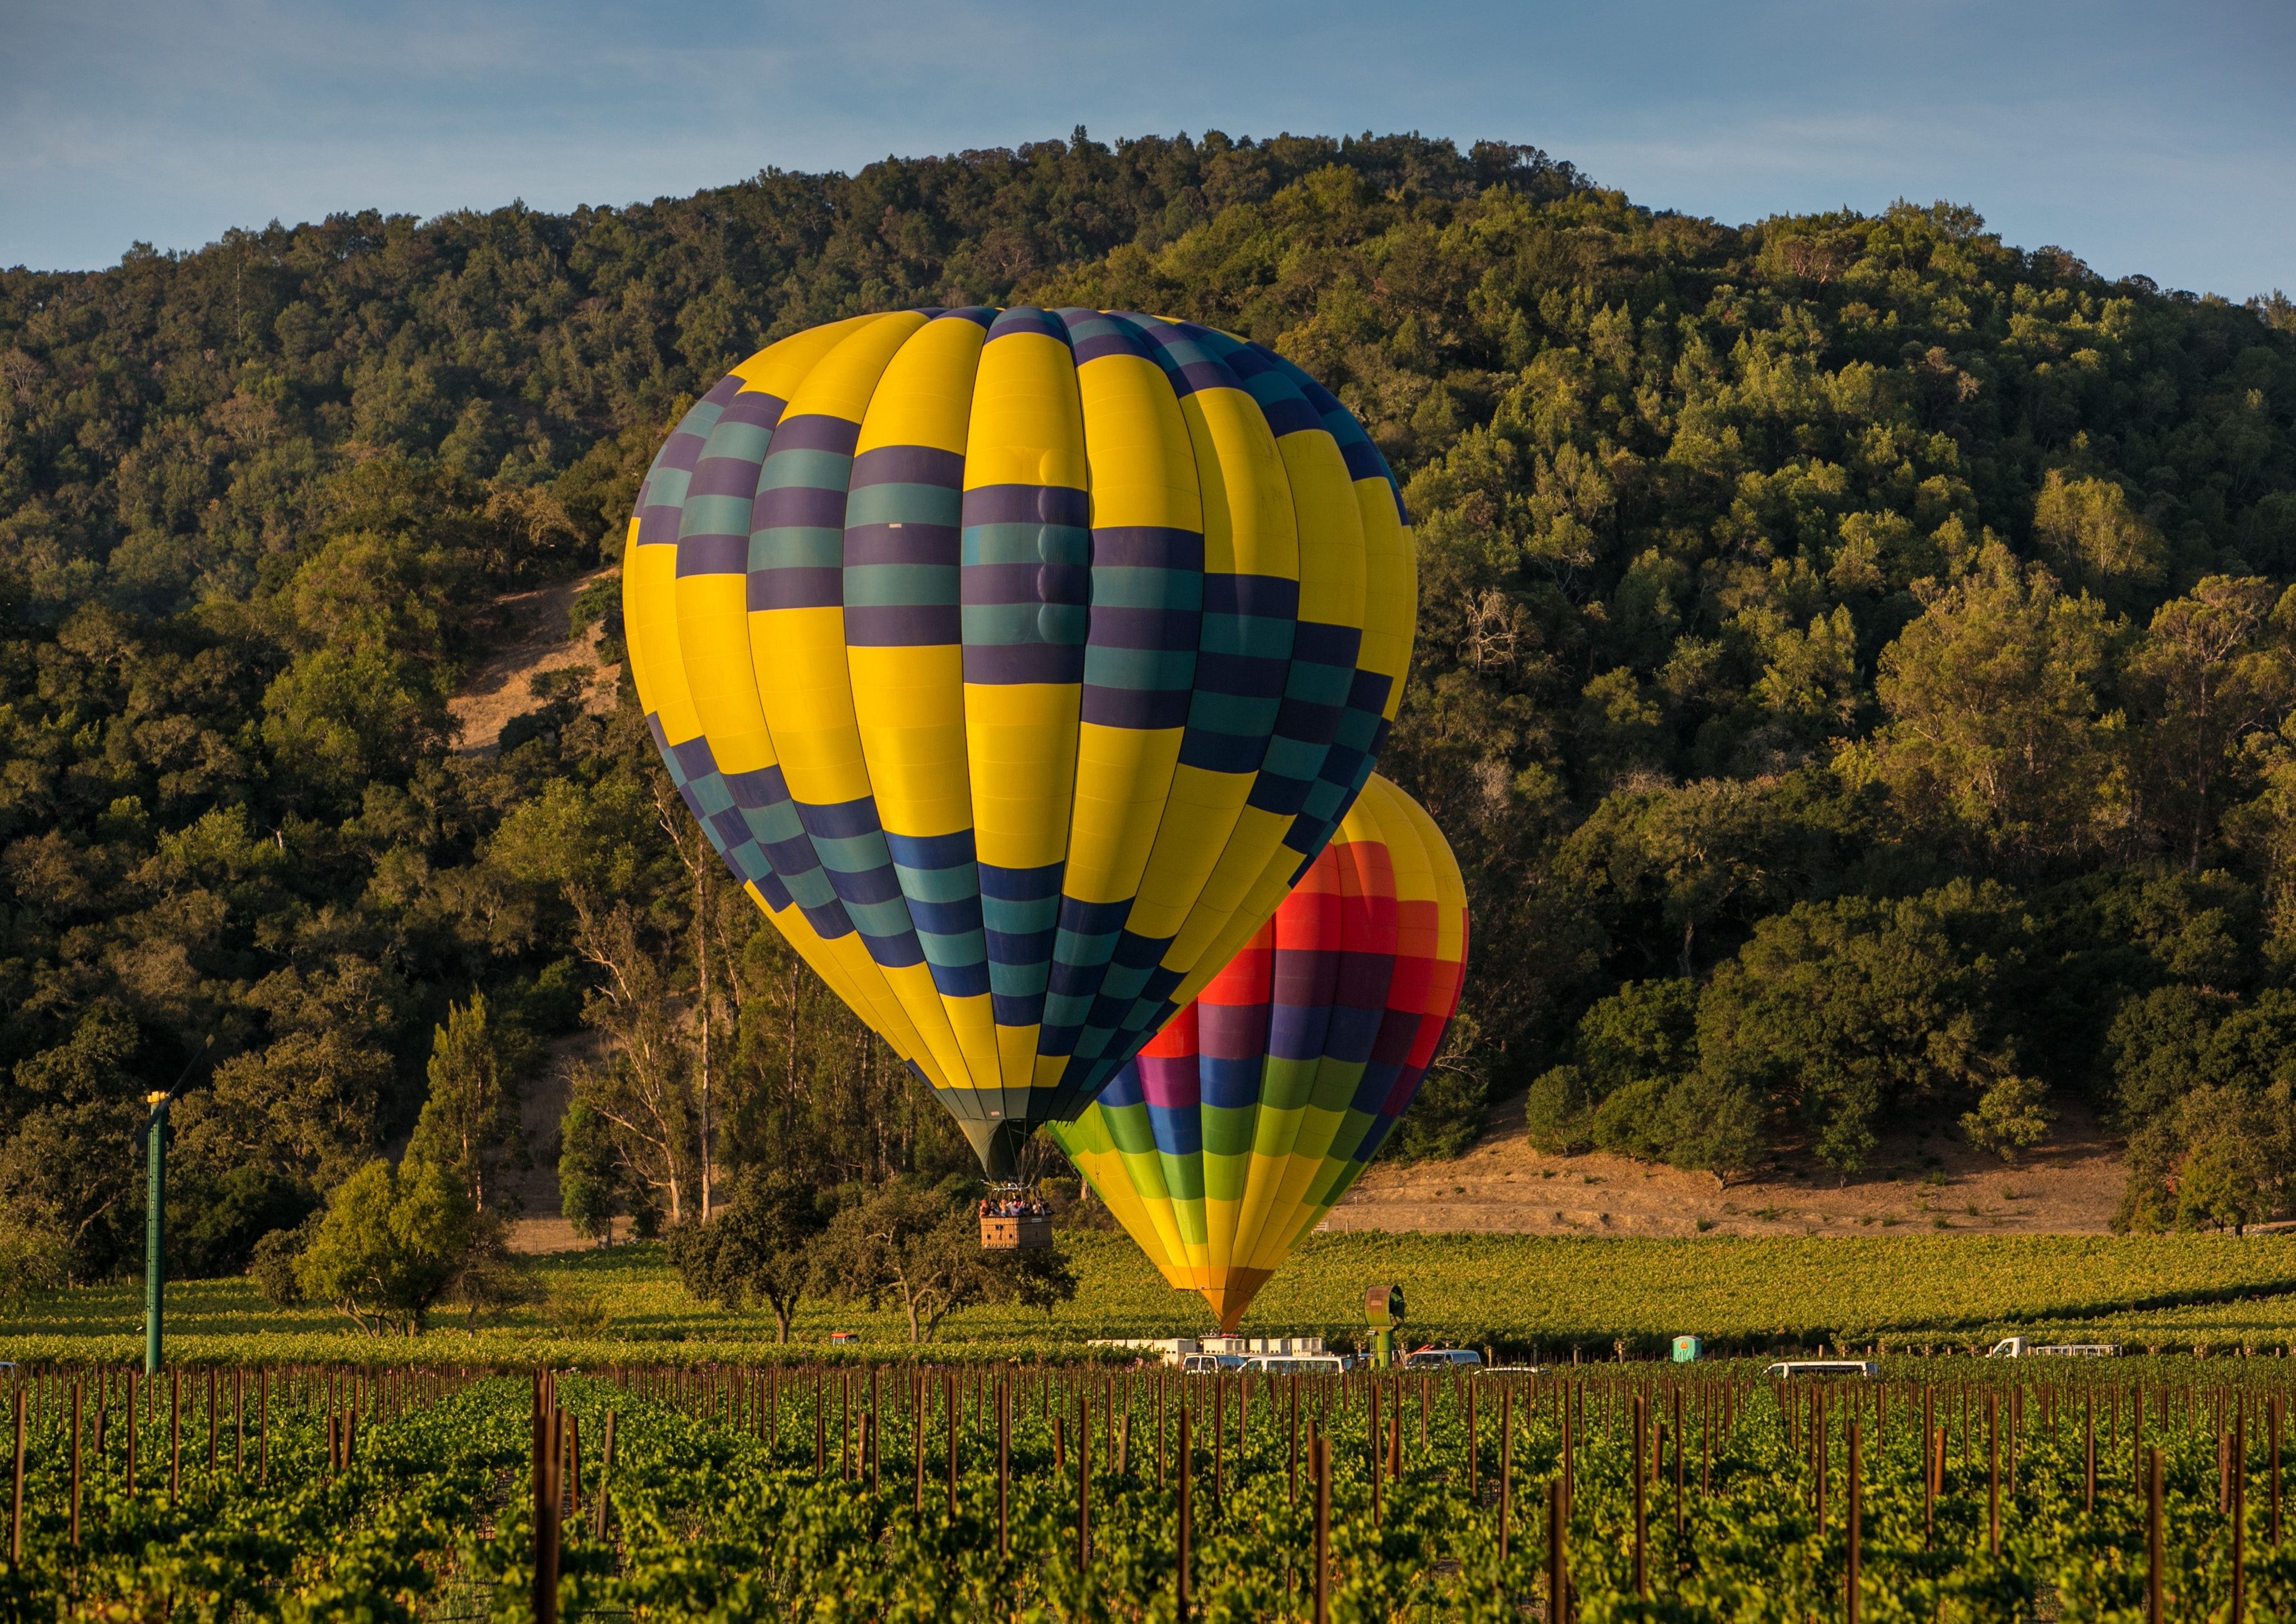 Colorful hot air balloons landing on the ground in the middle of a green vineyard